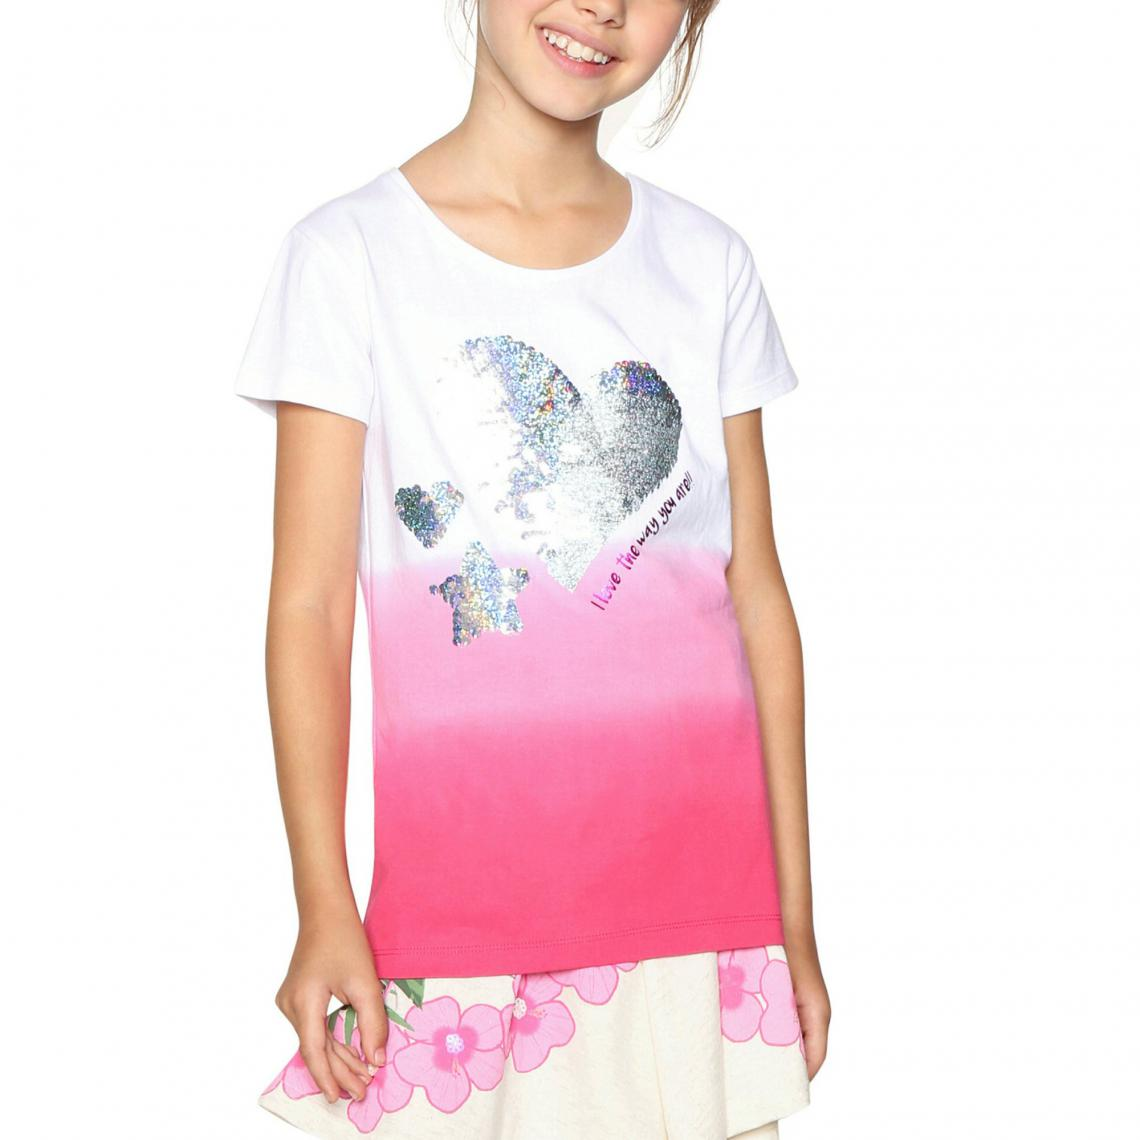 9ffa7f26d53ad Tee-shirt manches courtes fille Desigual - Rose Desigual Enfant